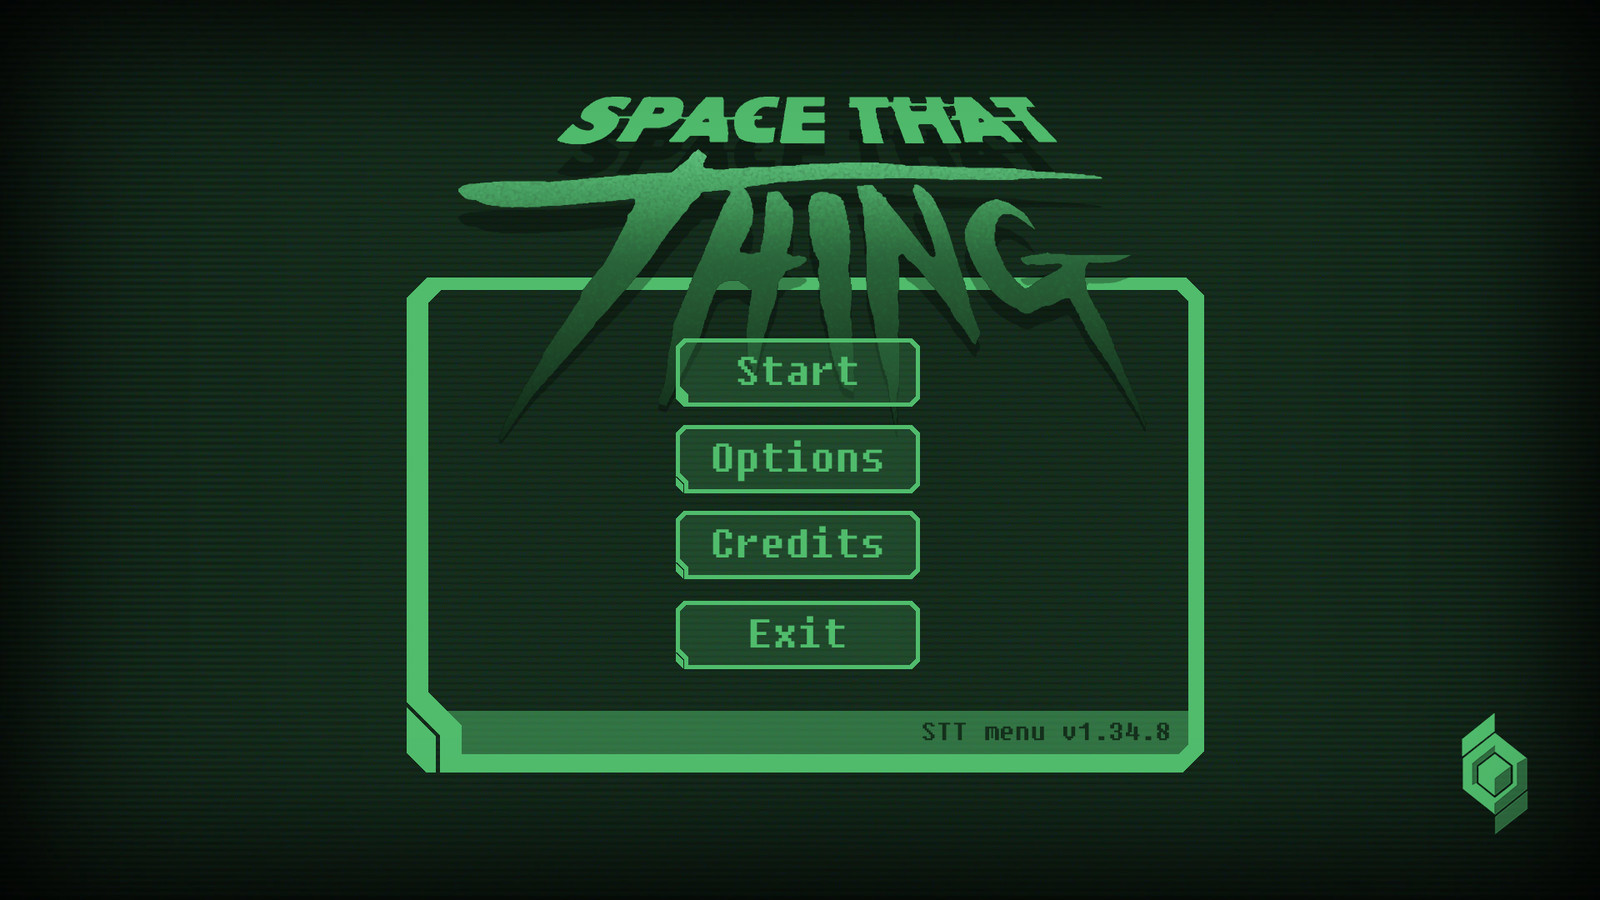 Space that Thing menus and UI